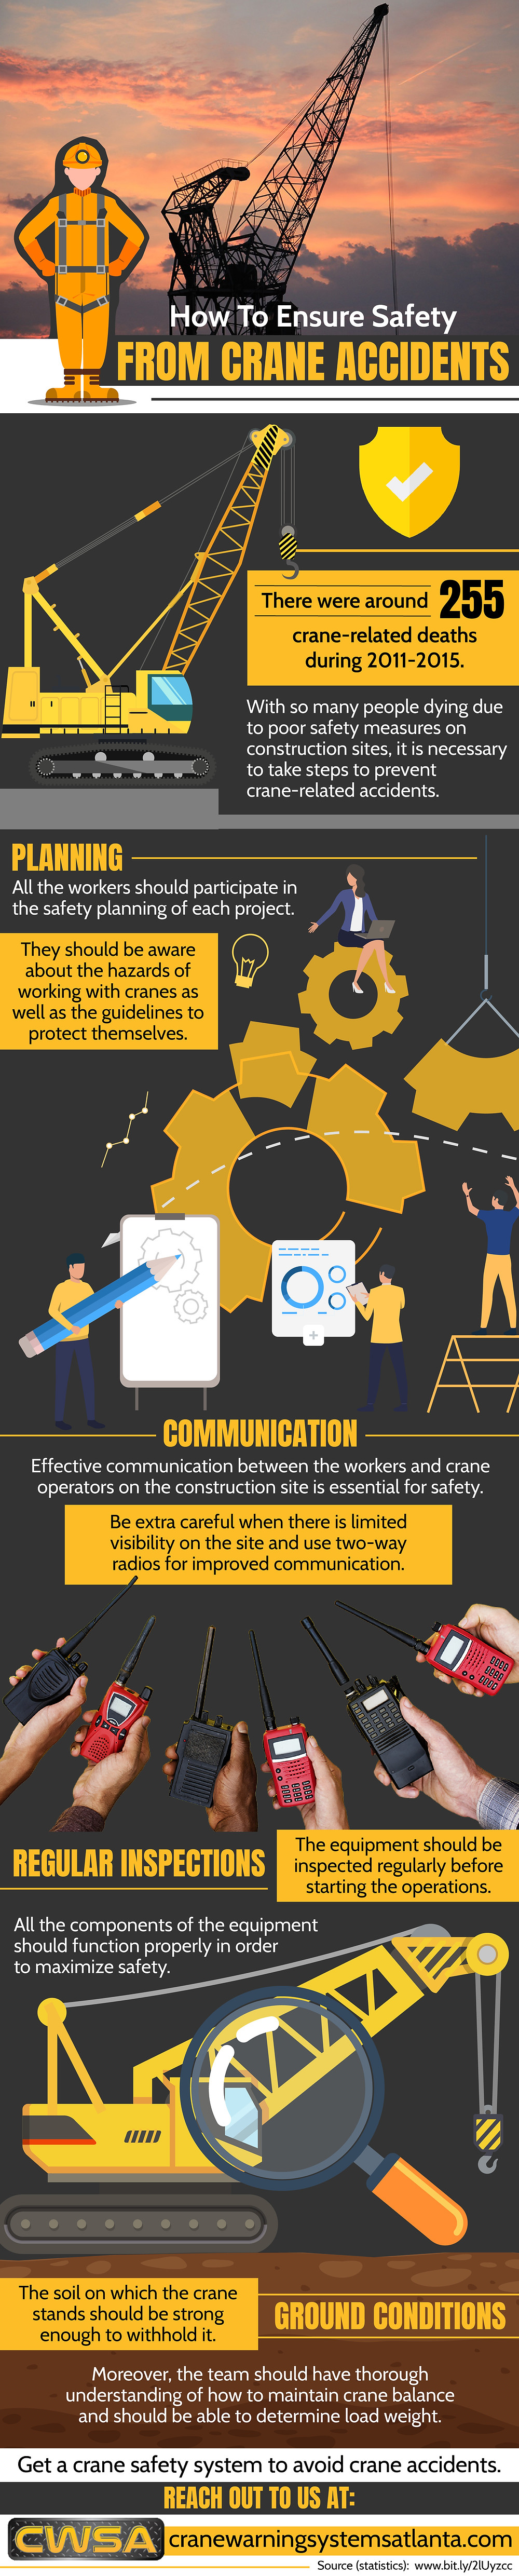 How to ensure safety from crane accidents